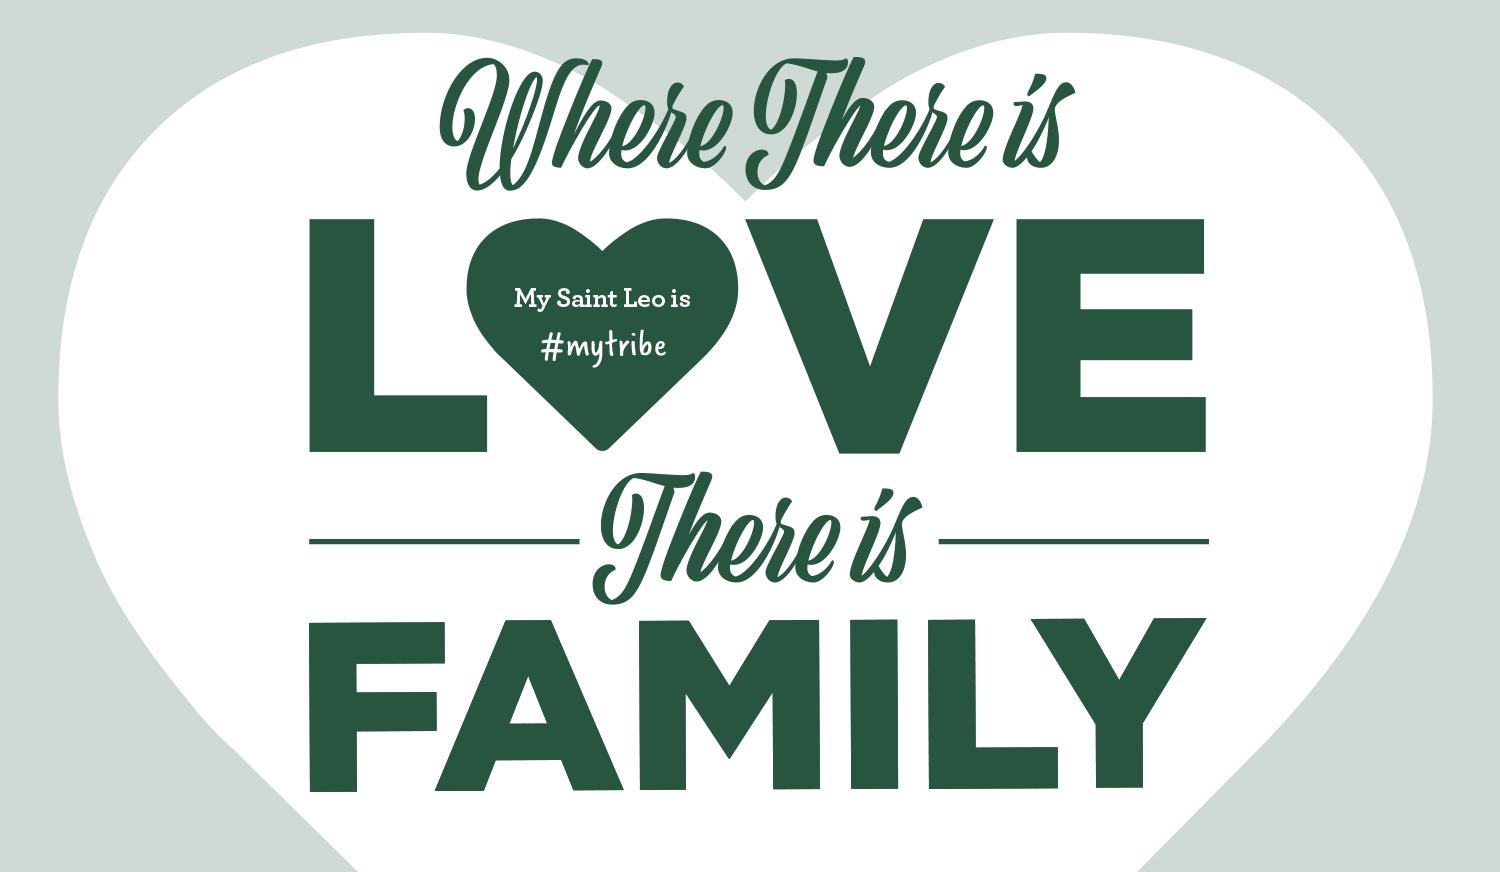 Where There is Love There is Family